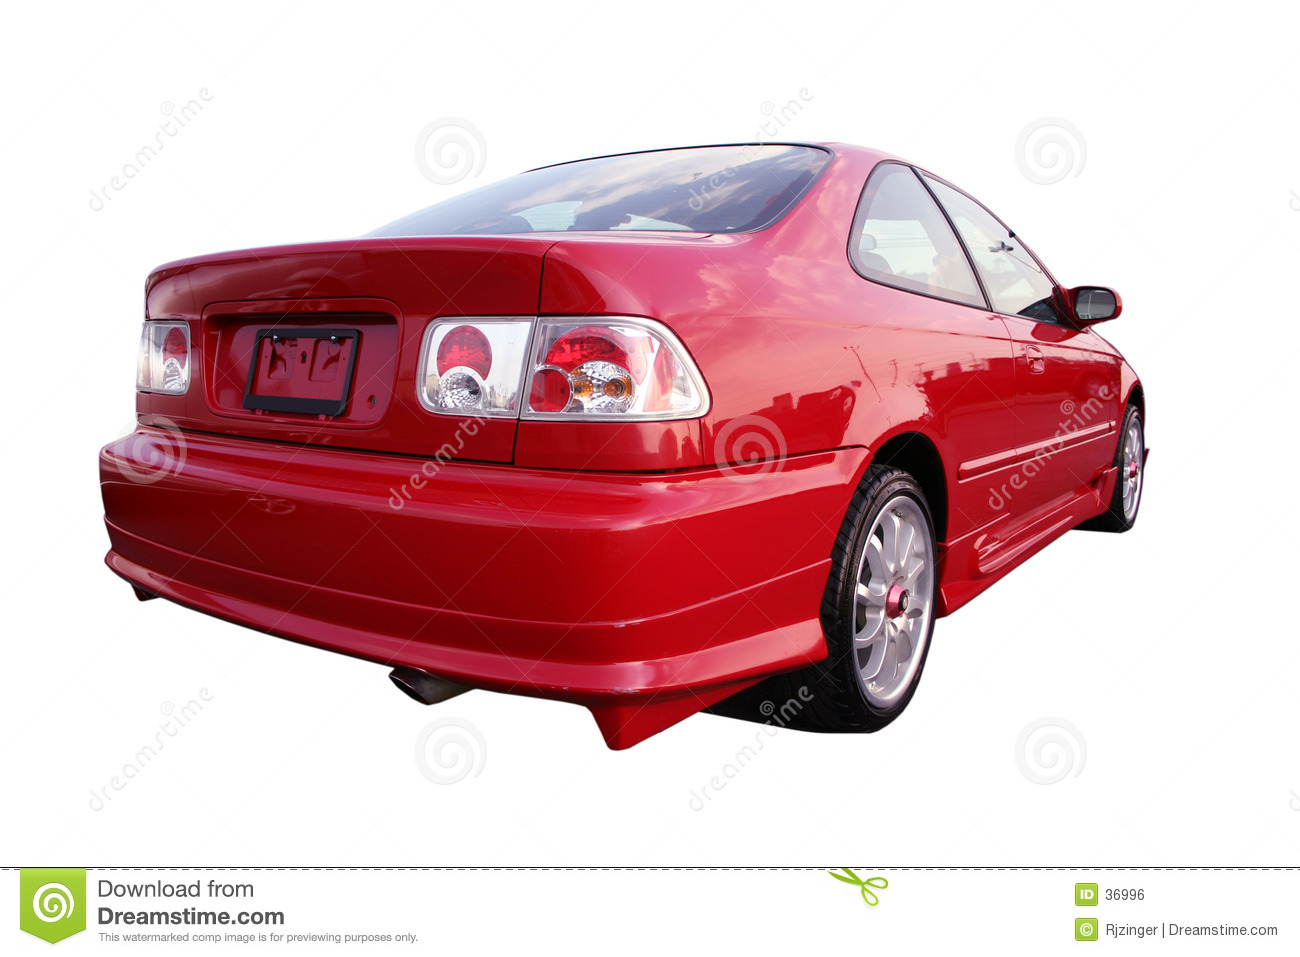 Honda Civic EX - Red 1